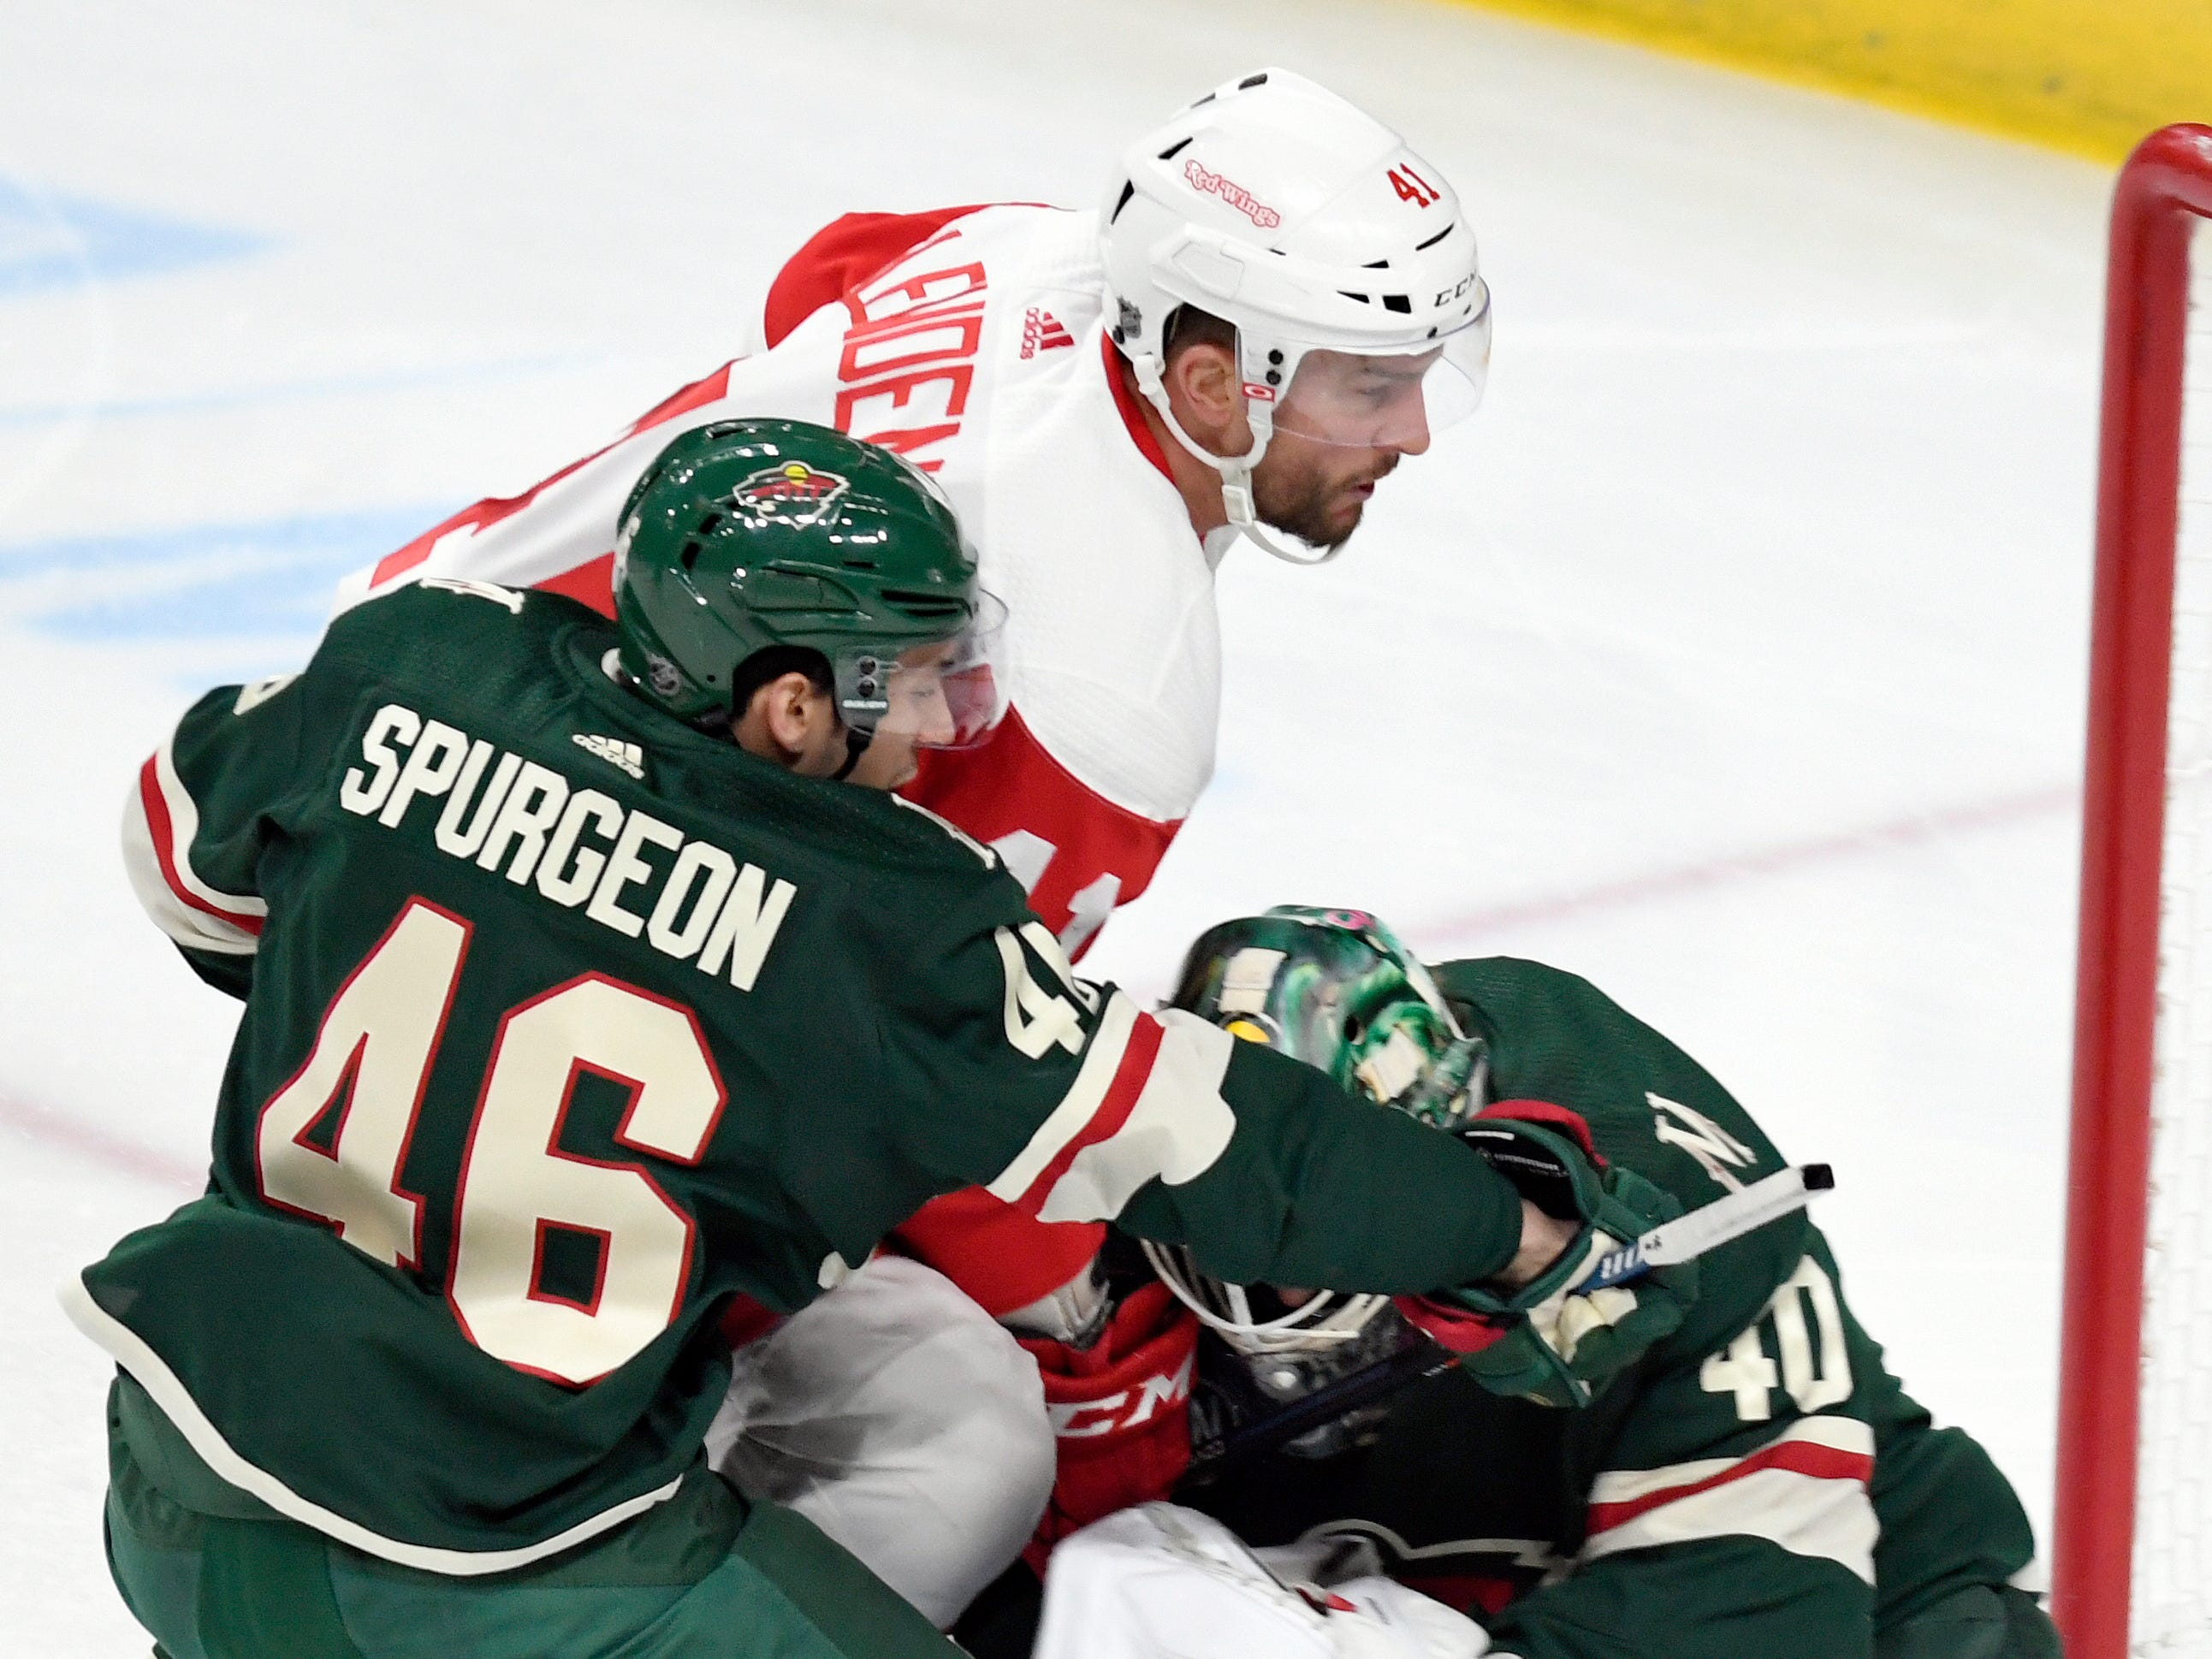 Minnesota Wild's Jared Spurgeon holds off Detroit Red Wings' Luke Glendening as he storms the goal while Wild goalie Devan Dubnyk stops the puck in the first period Saturday, Jan. 12, 2019, in St. Paul, Minn.